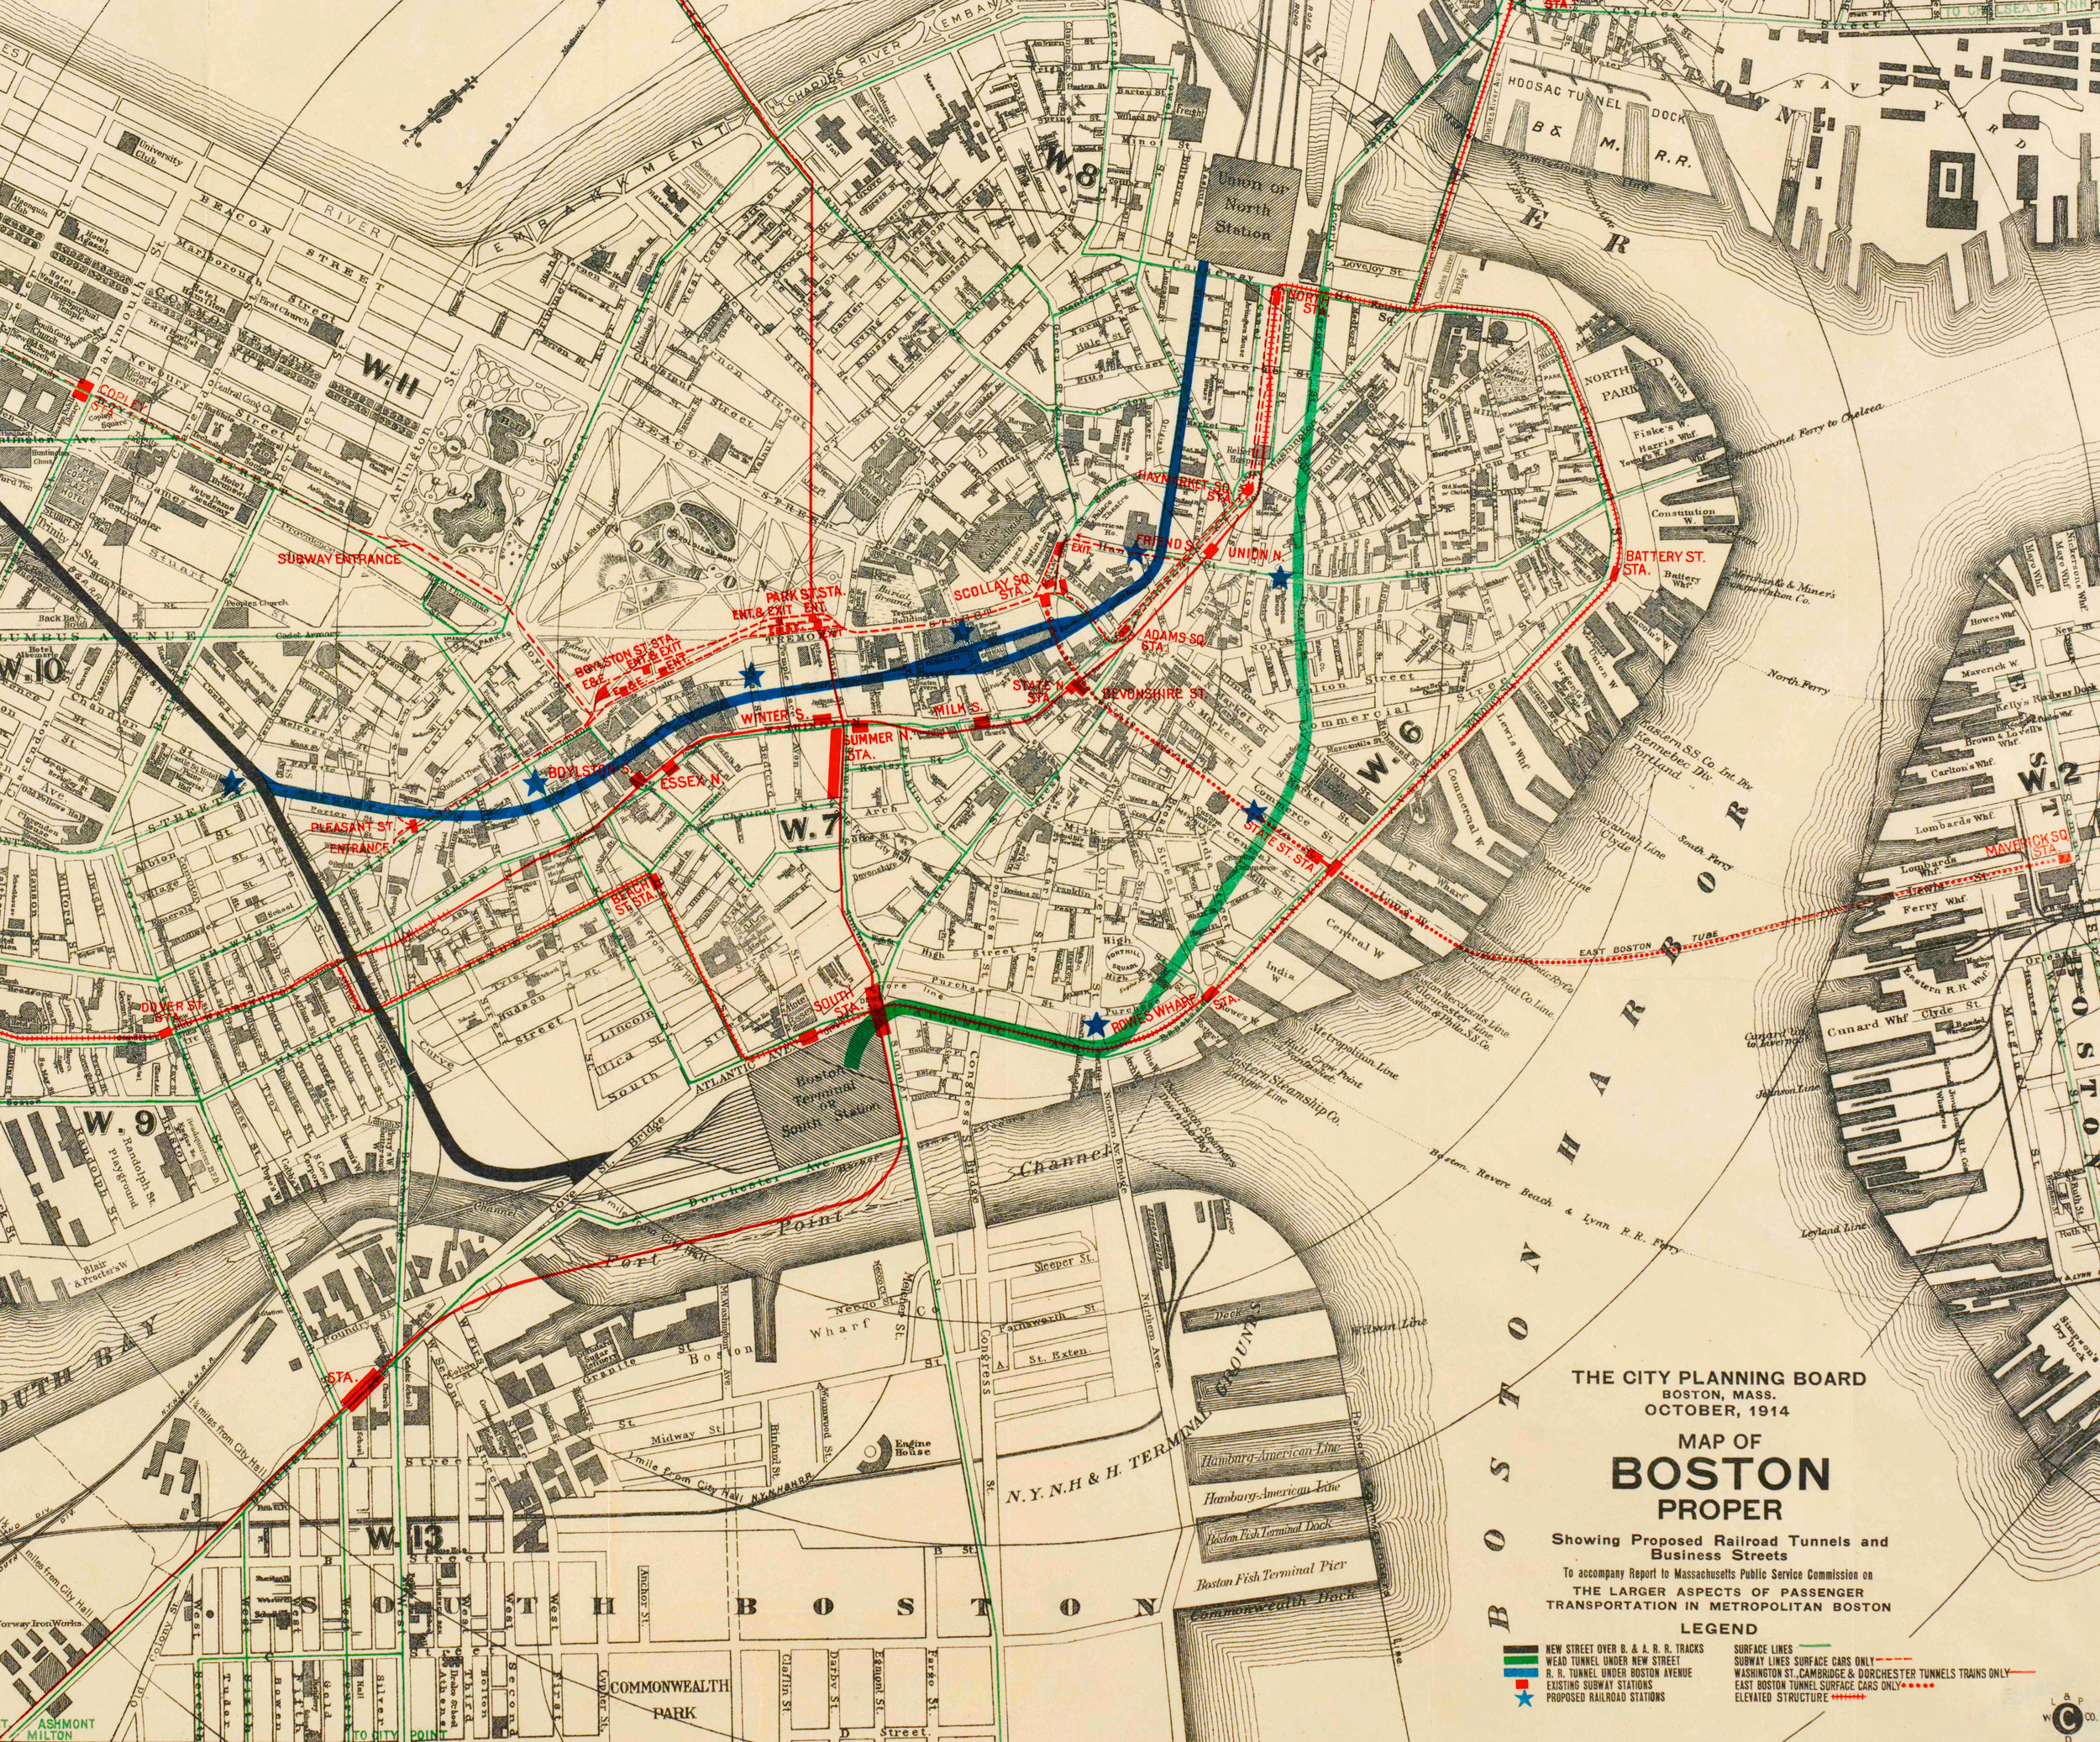 Map of Boston proper, showing proposed railroad tunnels and business streets, October 1914  [Boston Public Library]